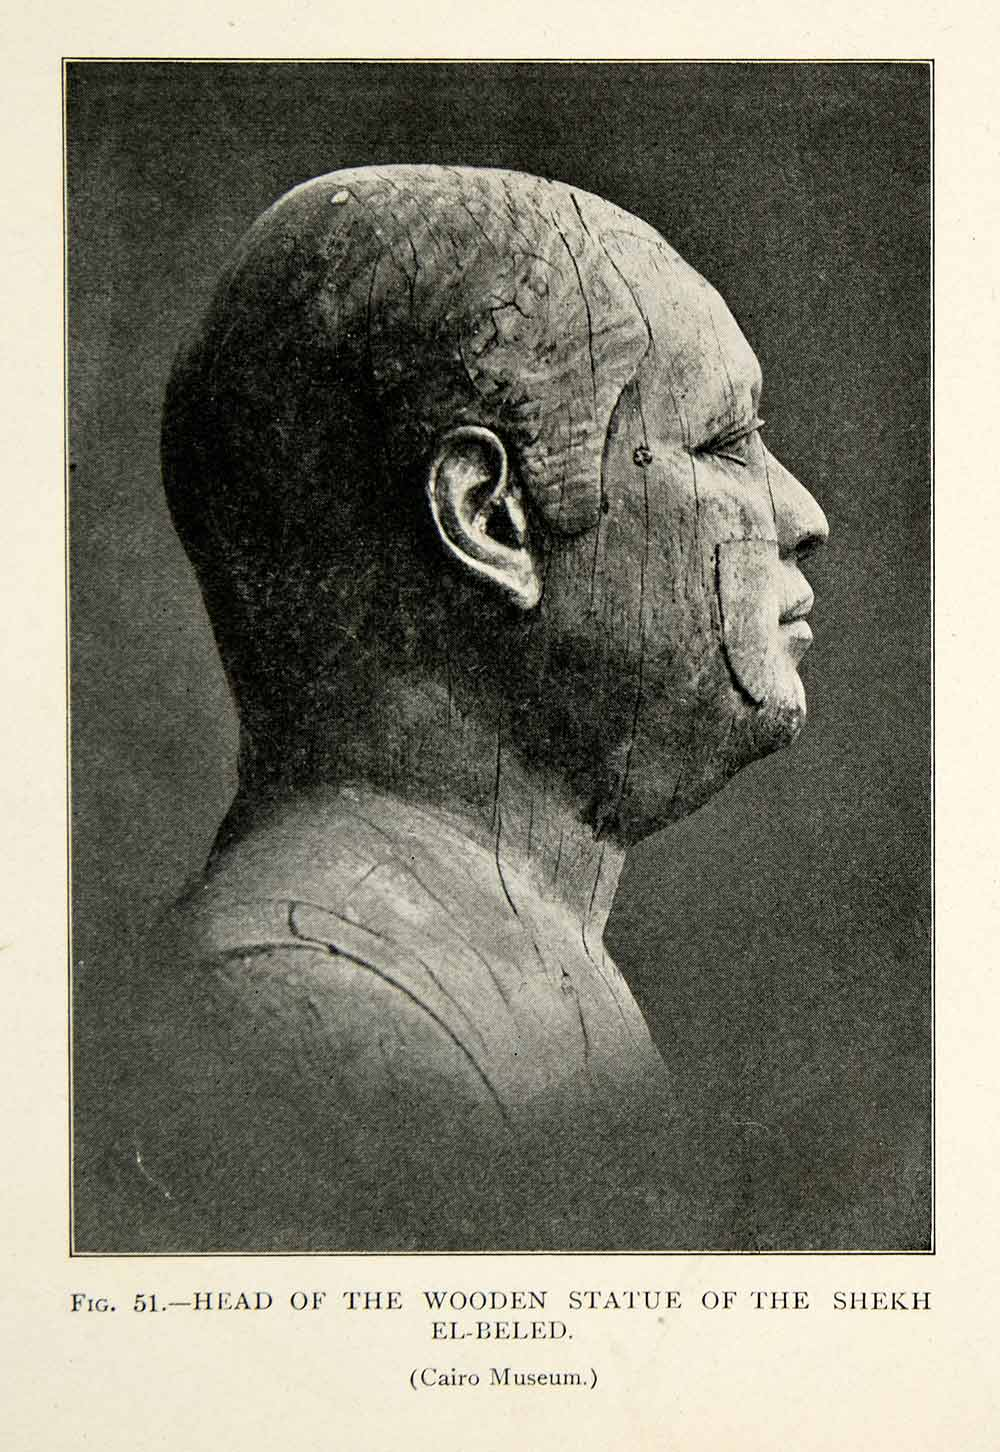 1909 Print Shekh el-Beled Wooden Statue Bust Figure Head Profile Ear Nose XHC8